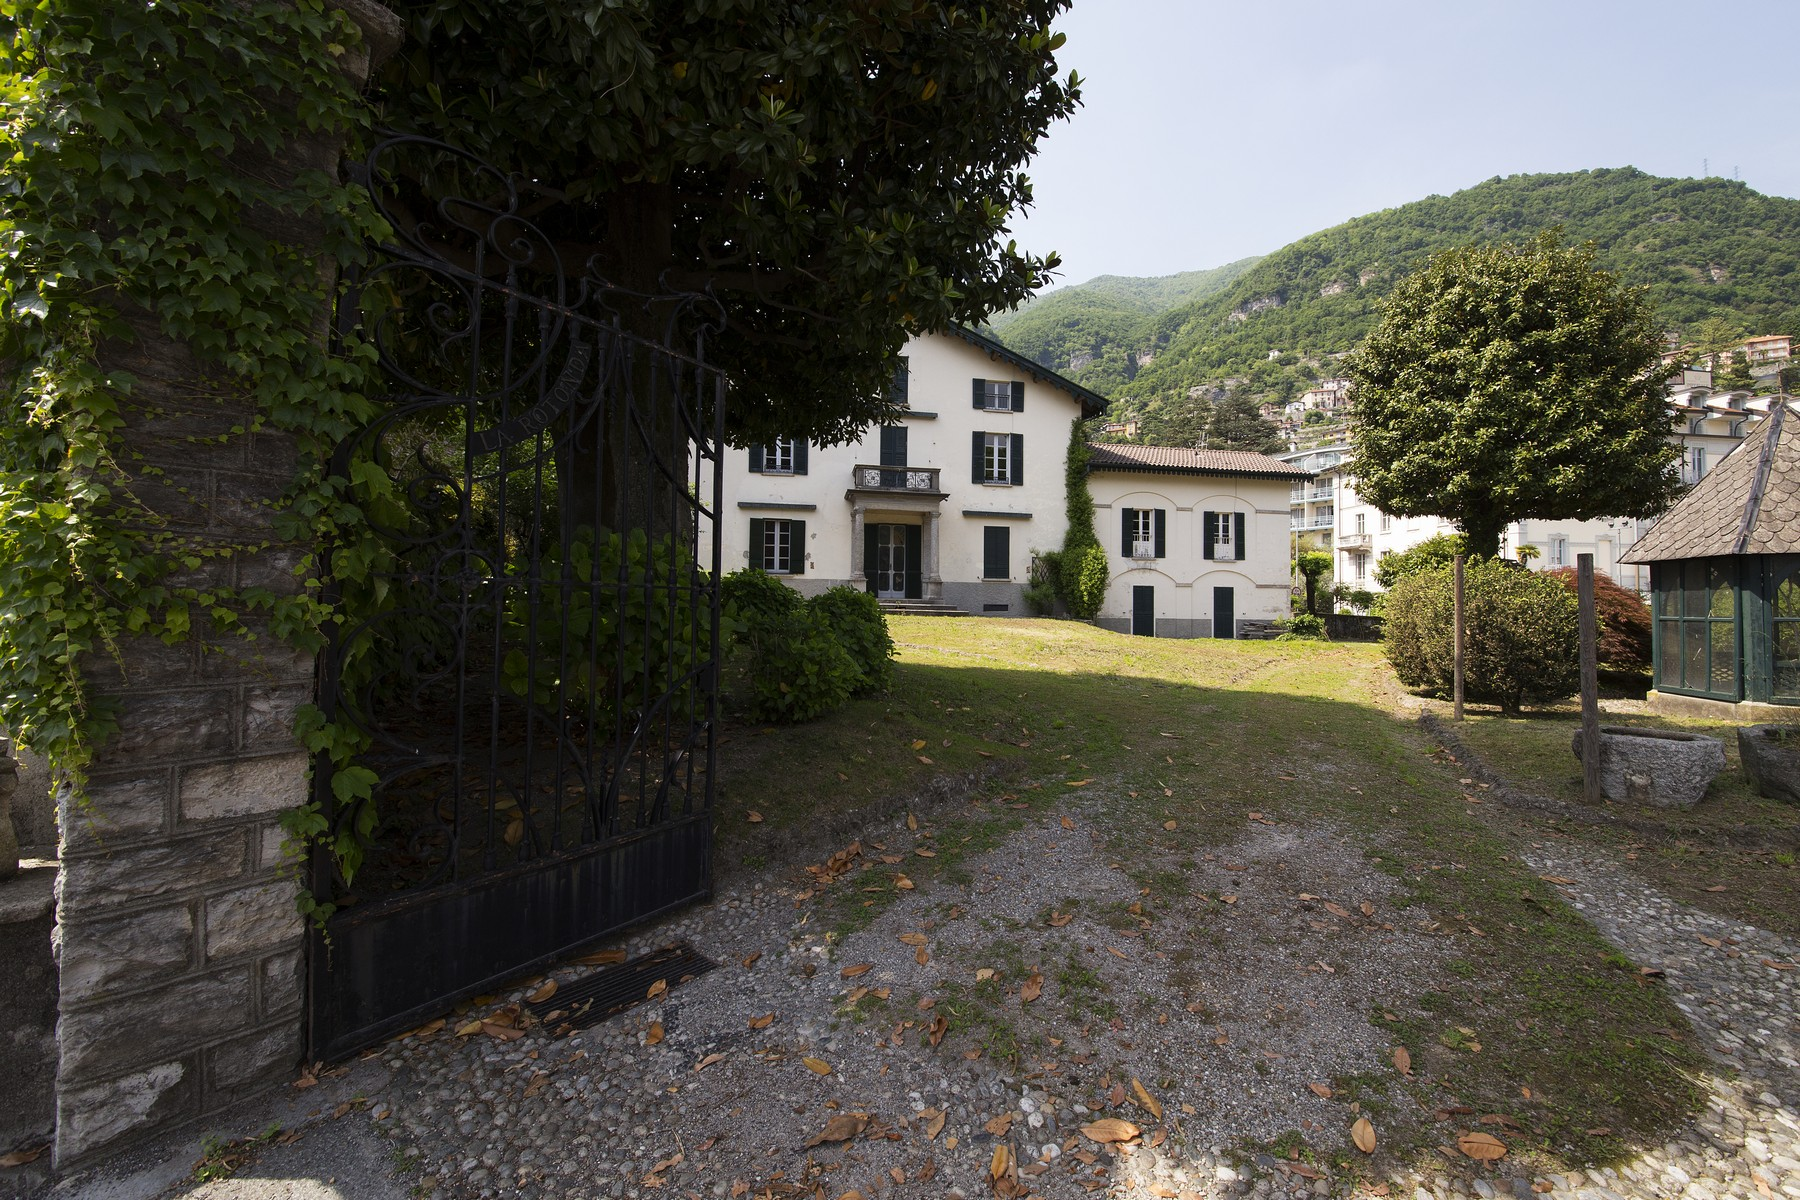 Additional photo for property listing at Charming property close to the shore of the lake Via Raschi Moltrasio, Como 22010 Italie